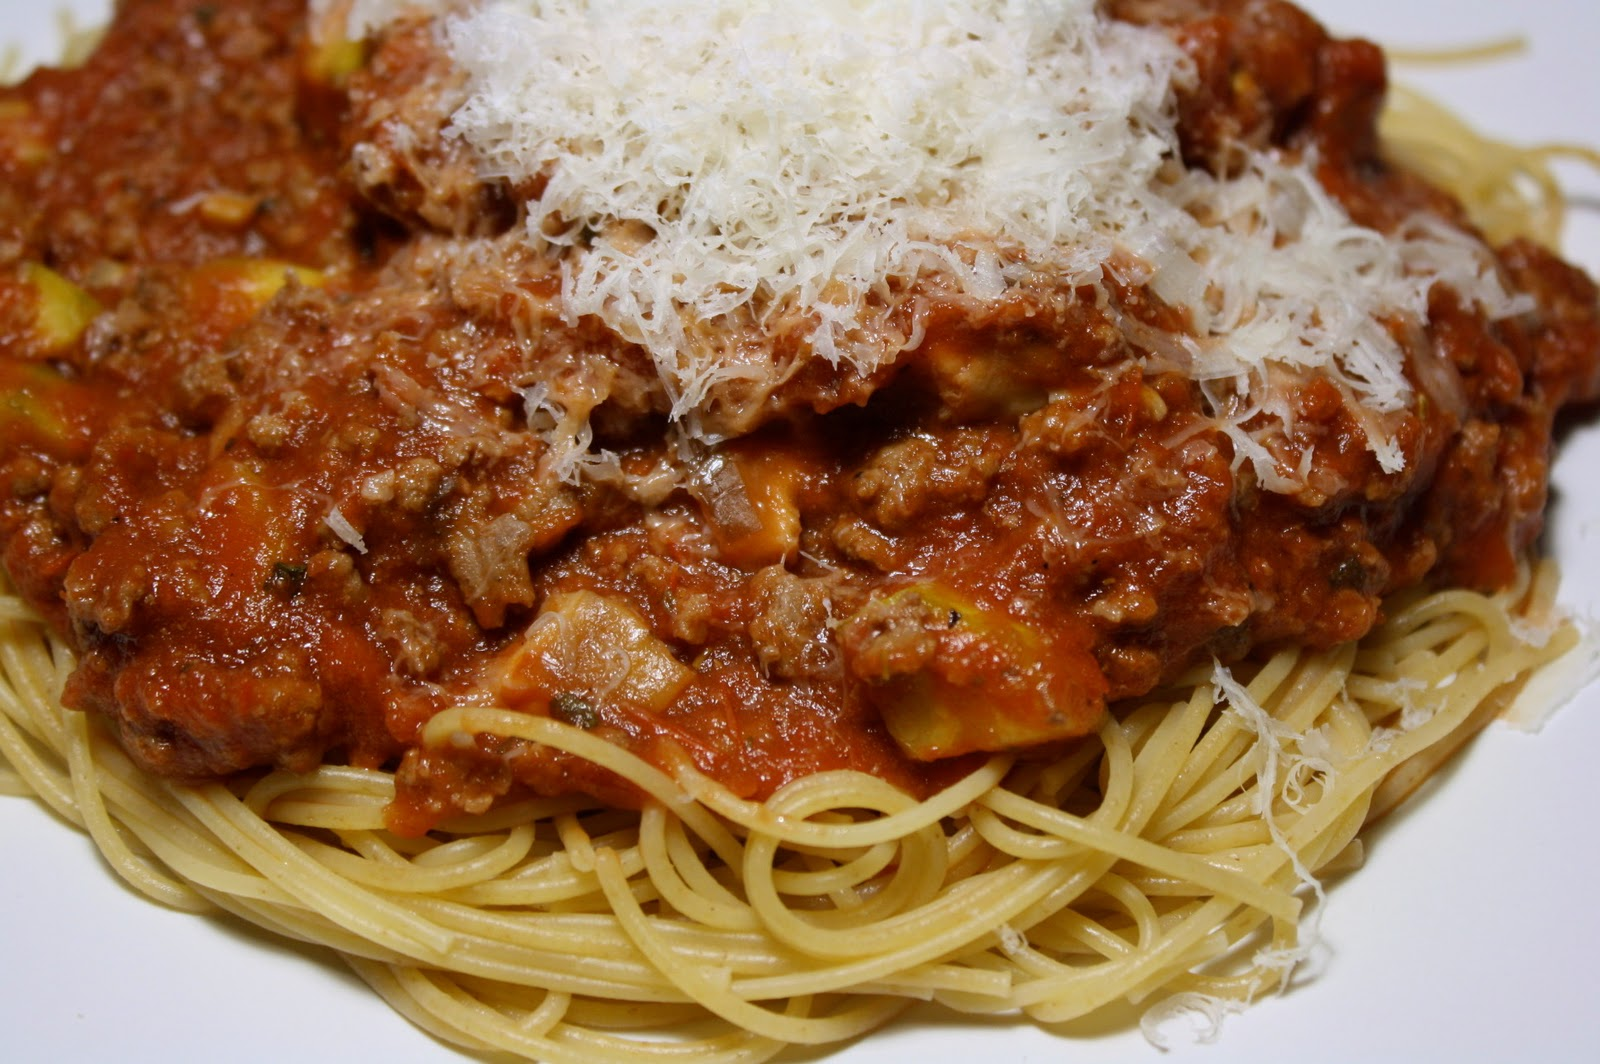 ... Mushroom, Zucchini And Meat Sauce | The Carnivore And The Vegetarian